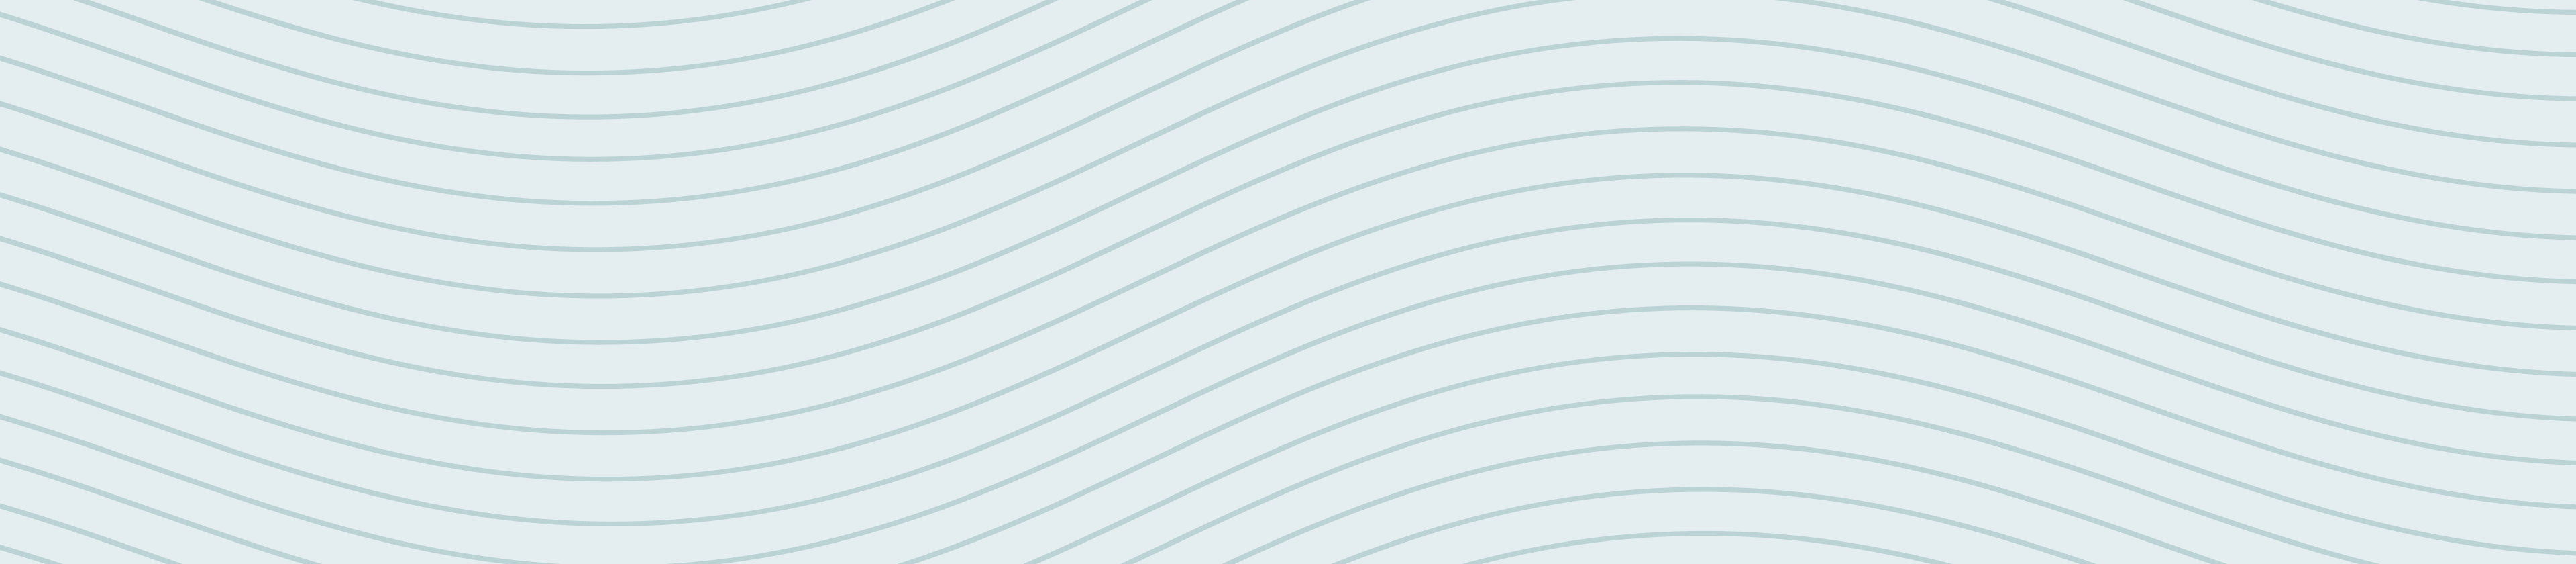 Vaya wavy line background